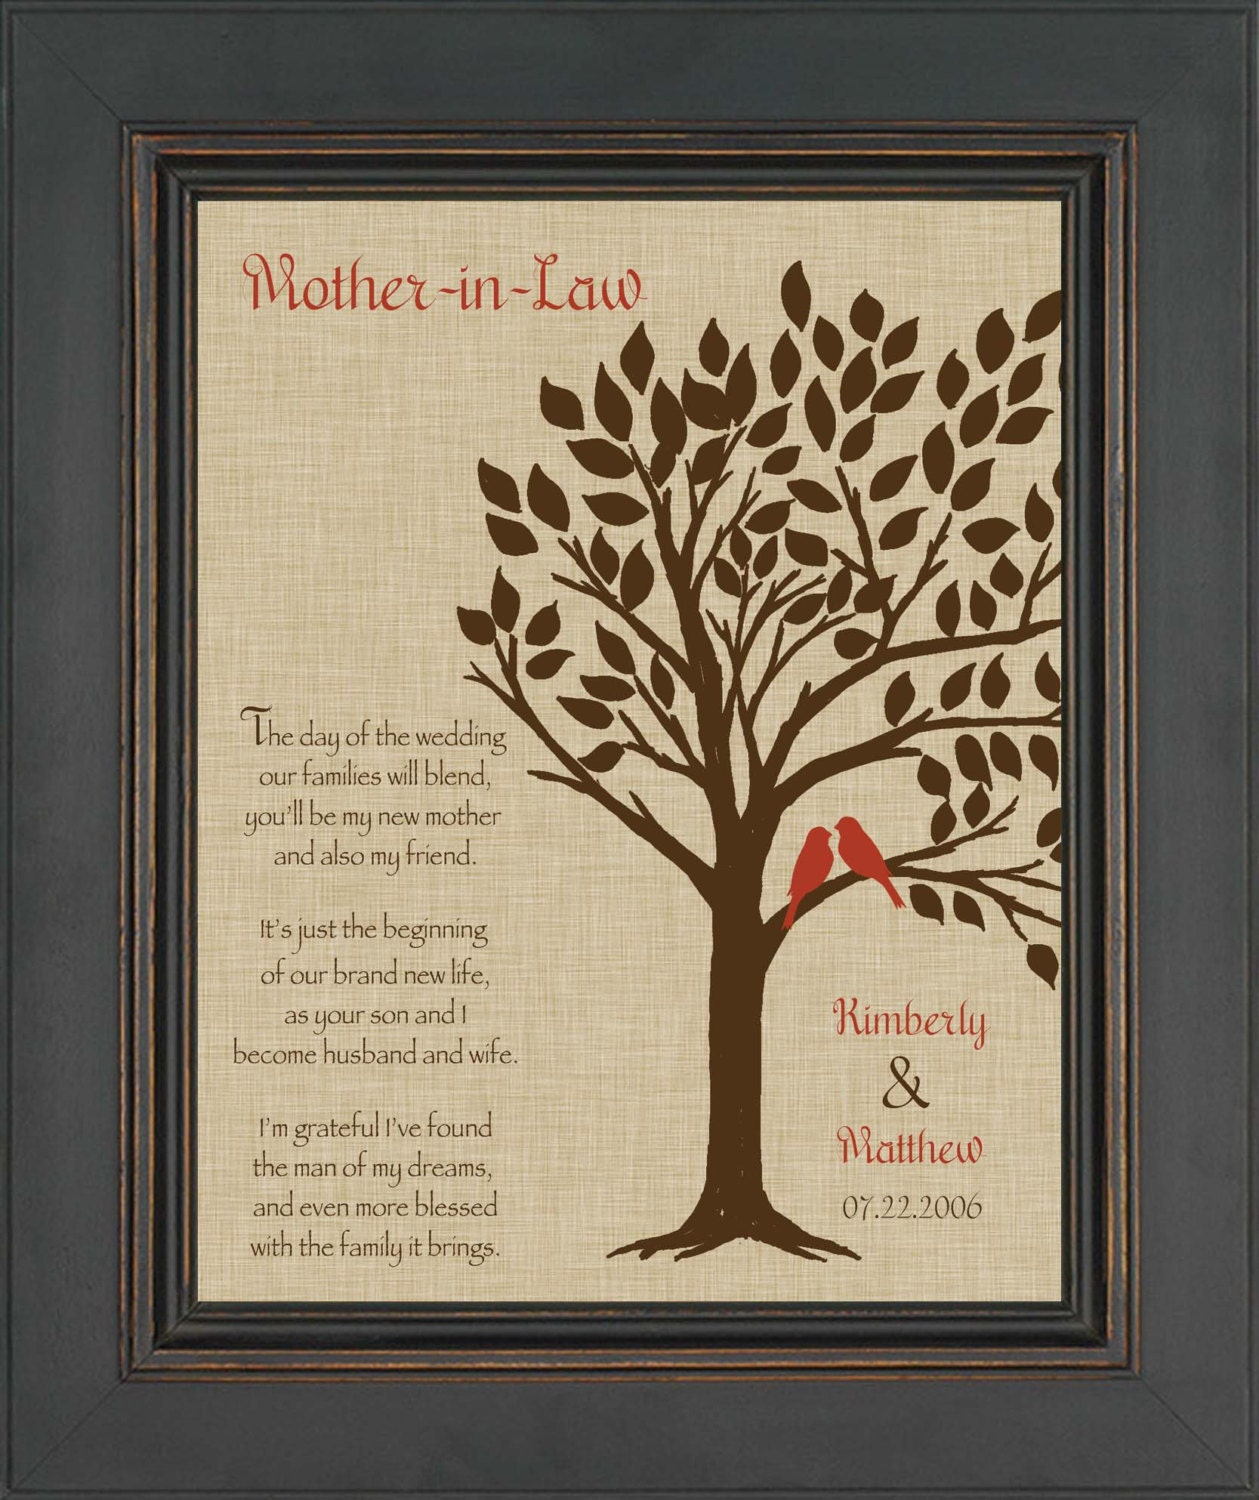 Bridal Gift From Mother: Wedding Gift For Mother In-Law Future Mom In-Law Gift